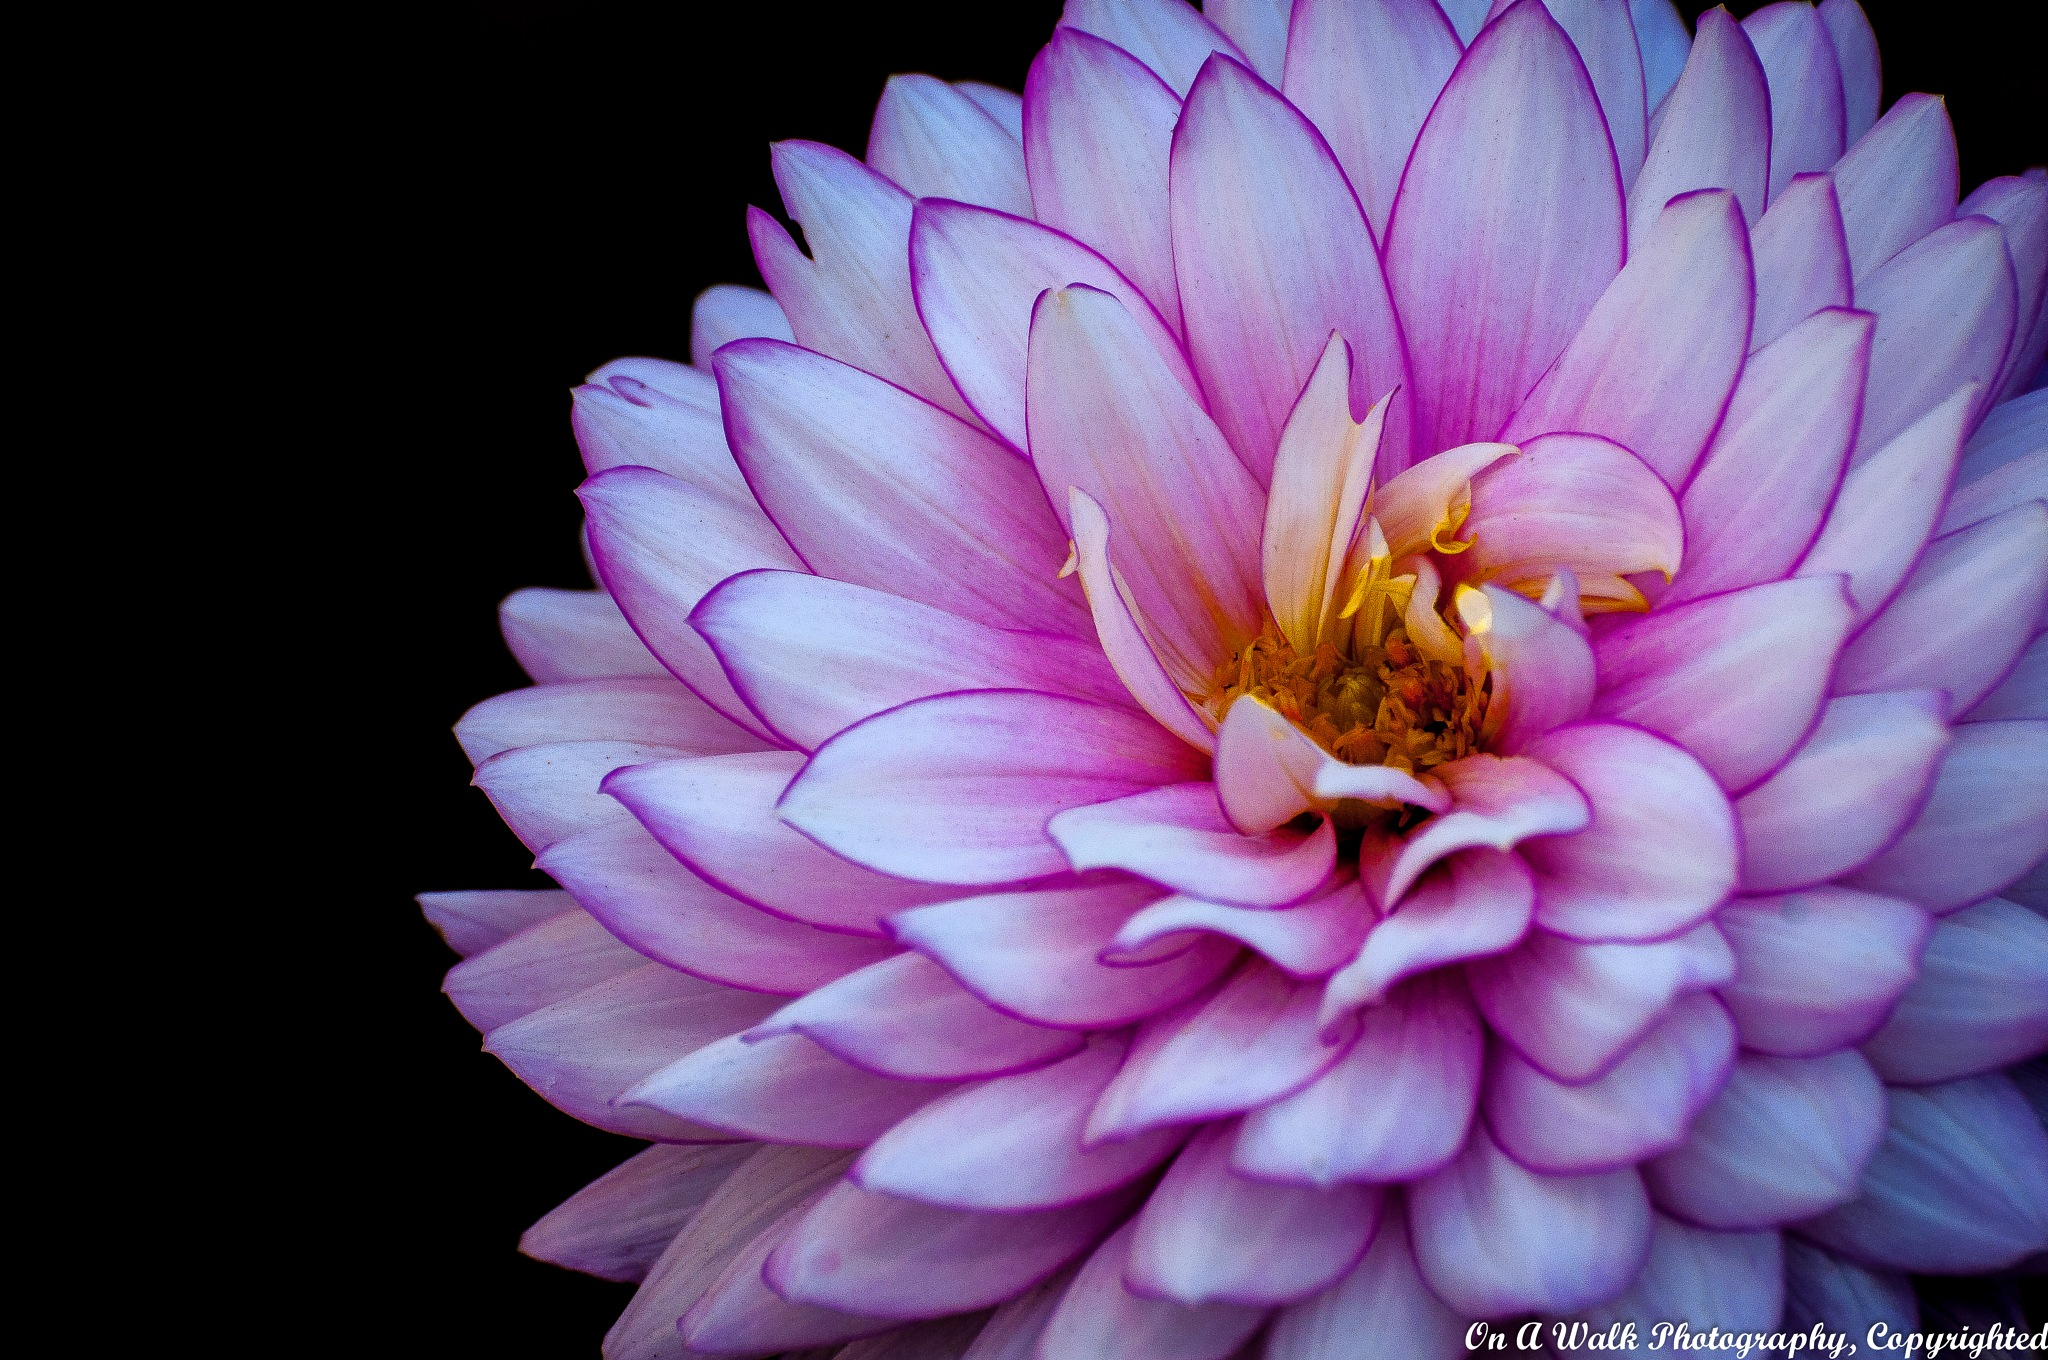 Dahlia by On A Walk Photography